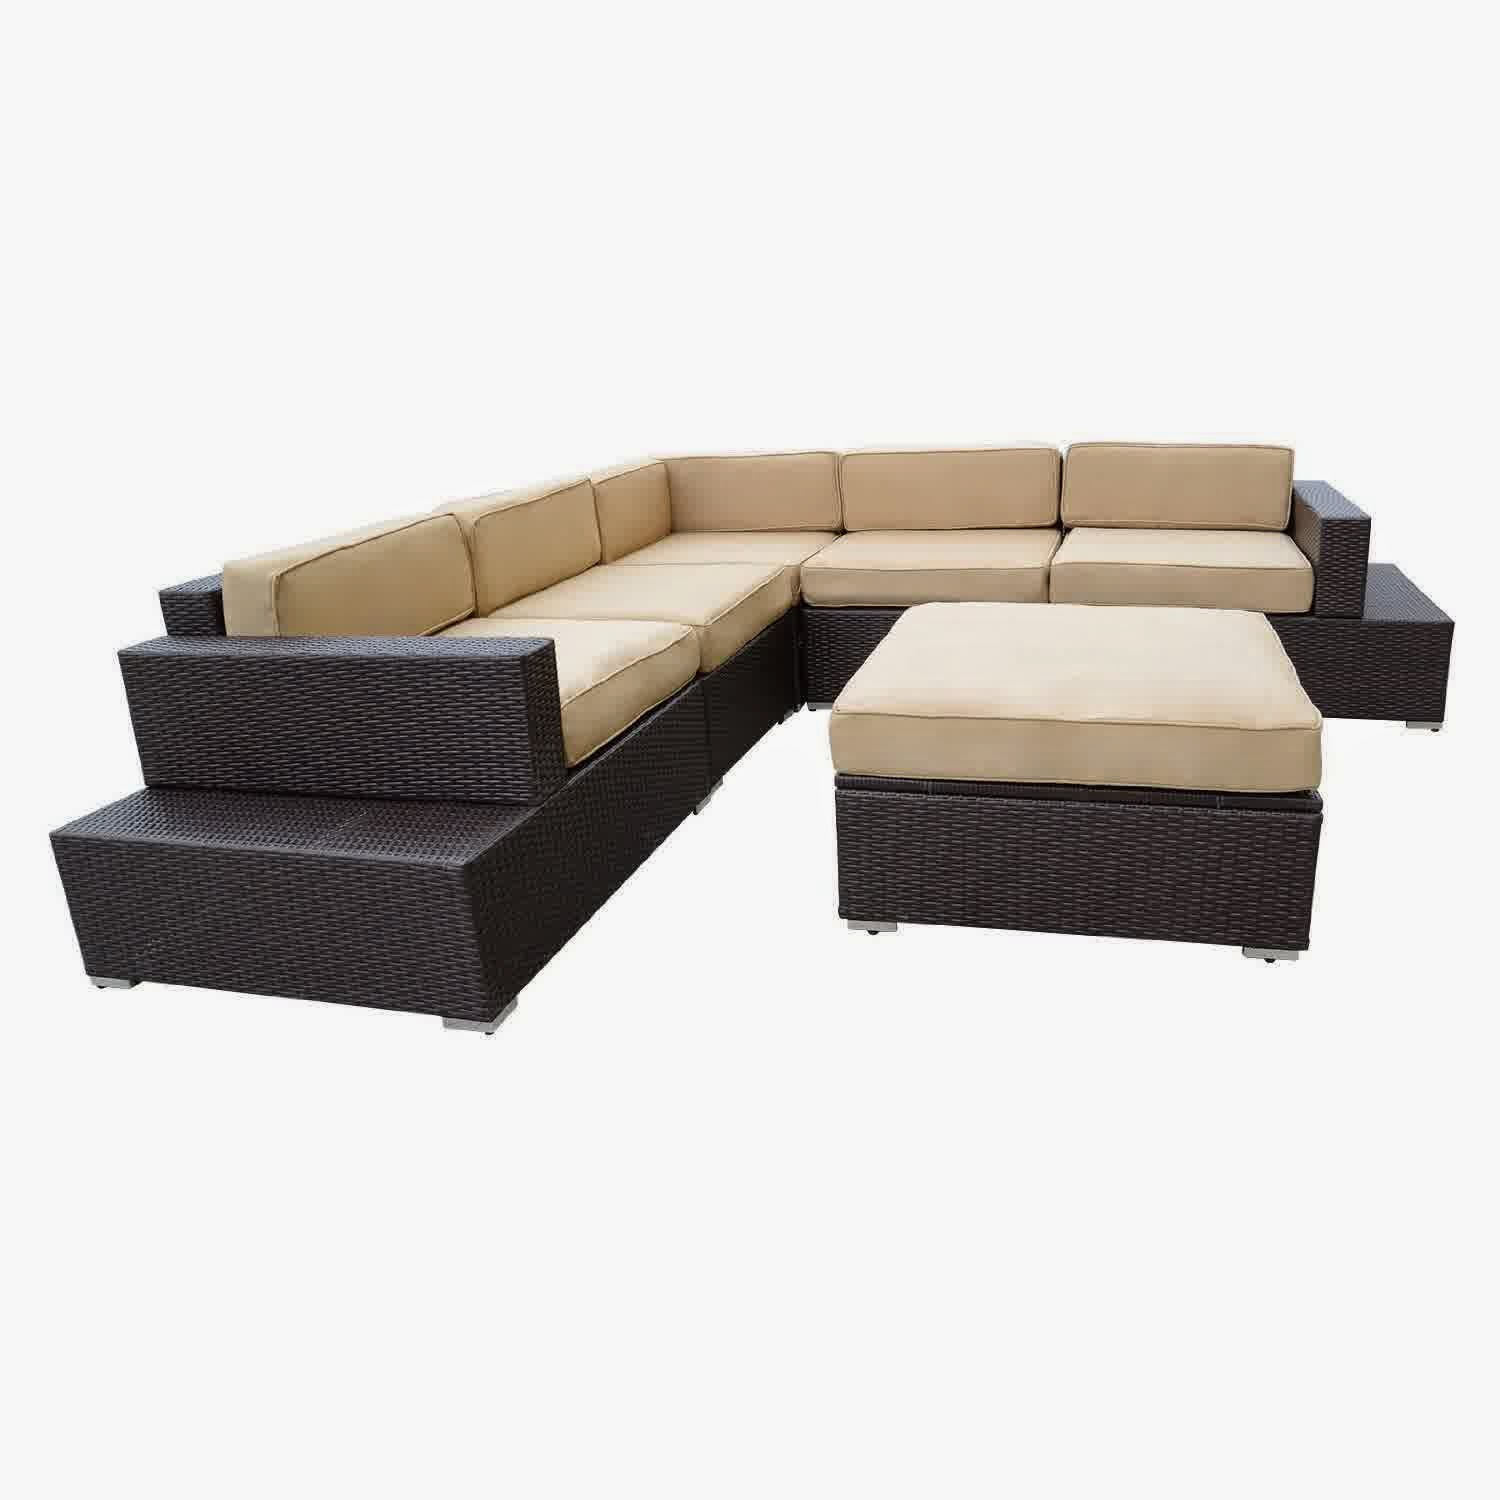 Outdoor Rattan Sofa Big Sale Discount 50 Outdoor Patio Rattan Sofa Wicker